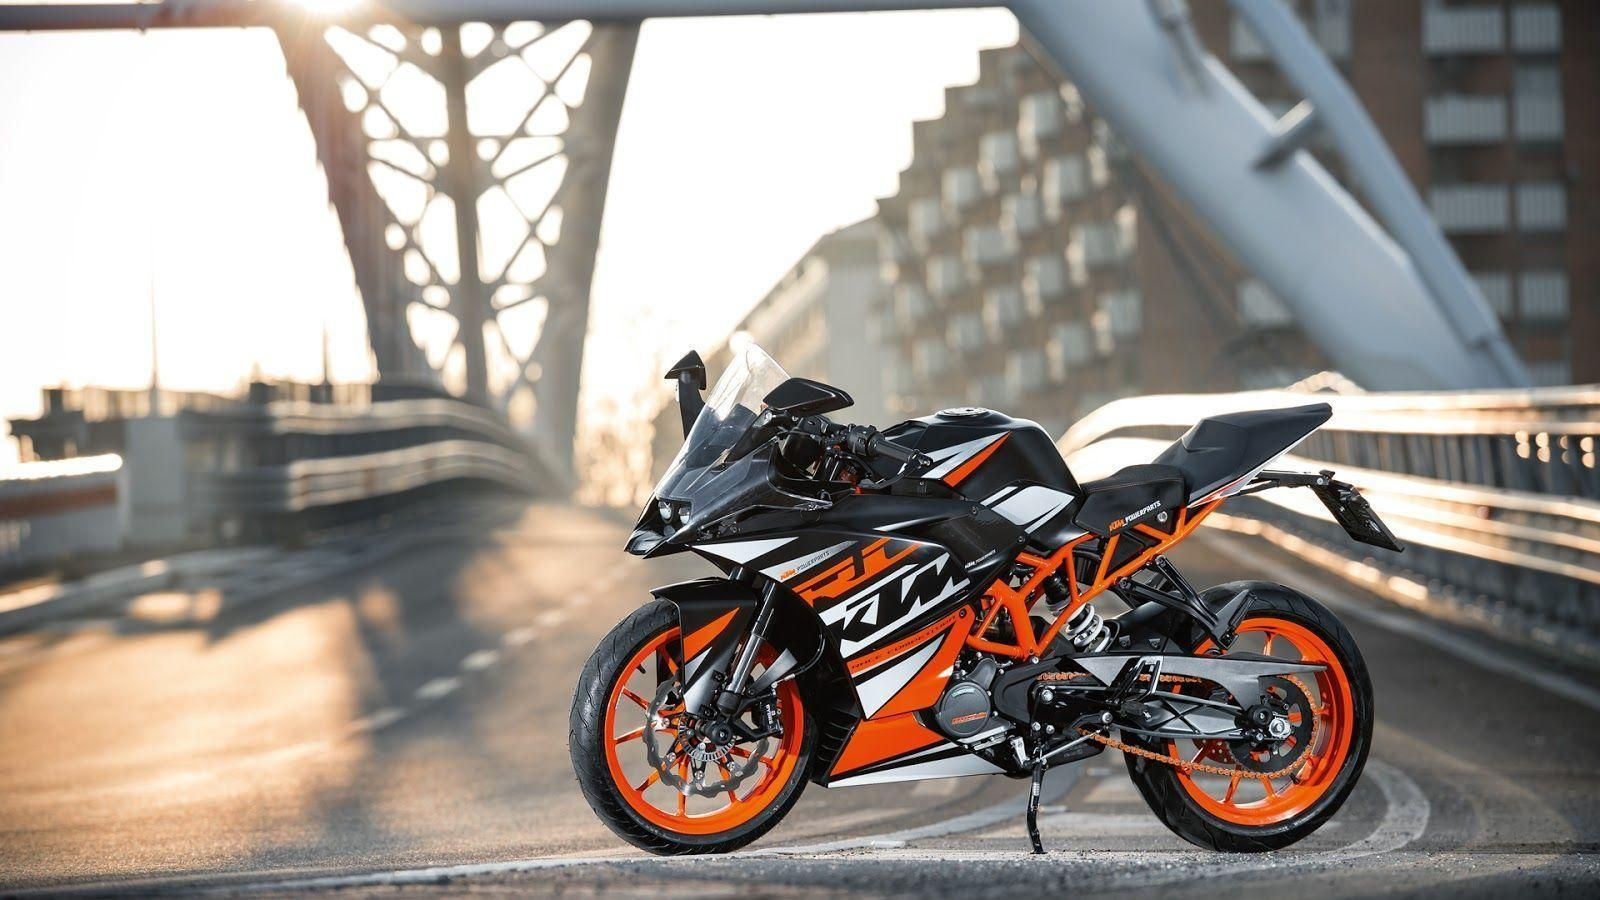 Ktm Bike Hd Wallpaper 1080p Check More At Http Viceimages Com